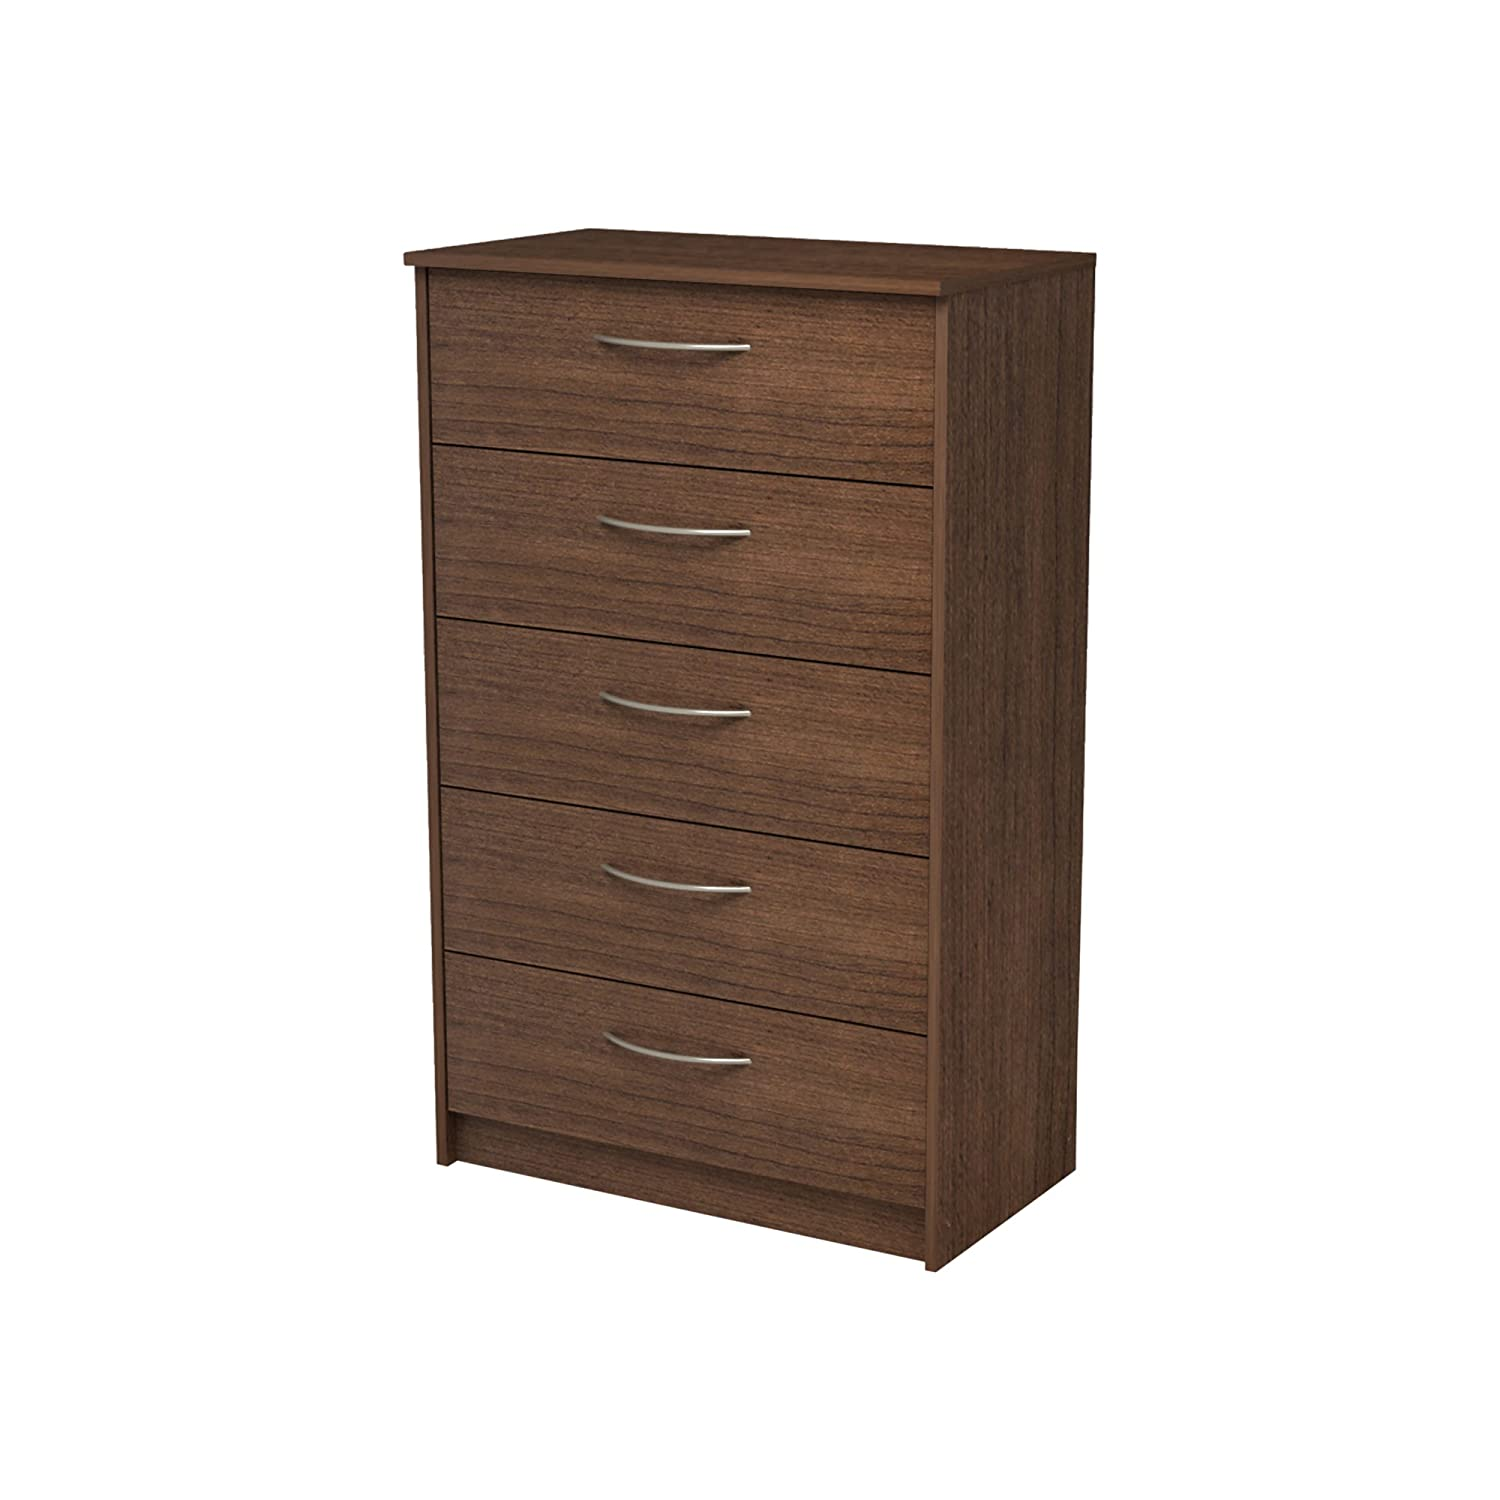 Homestar Finch 5 Drawer Chest - 27.5 x 15.63 x 44.5 - Walnut